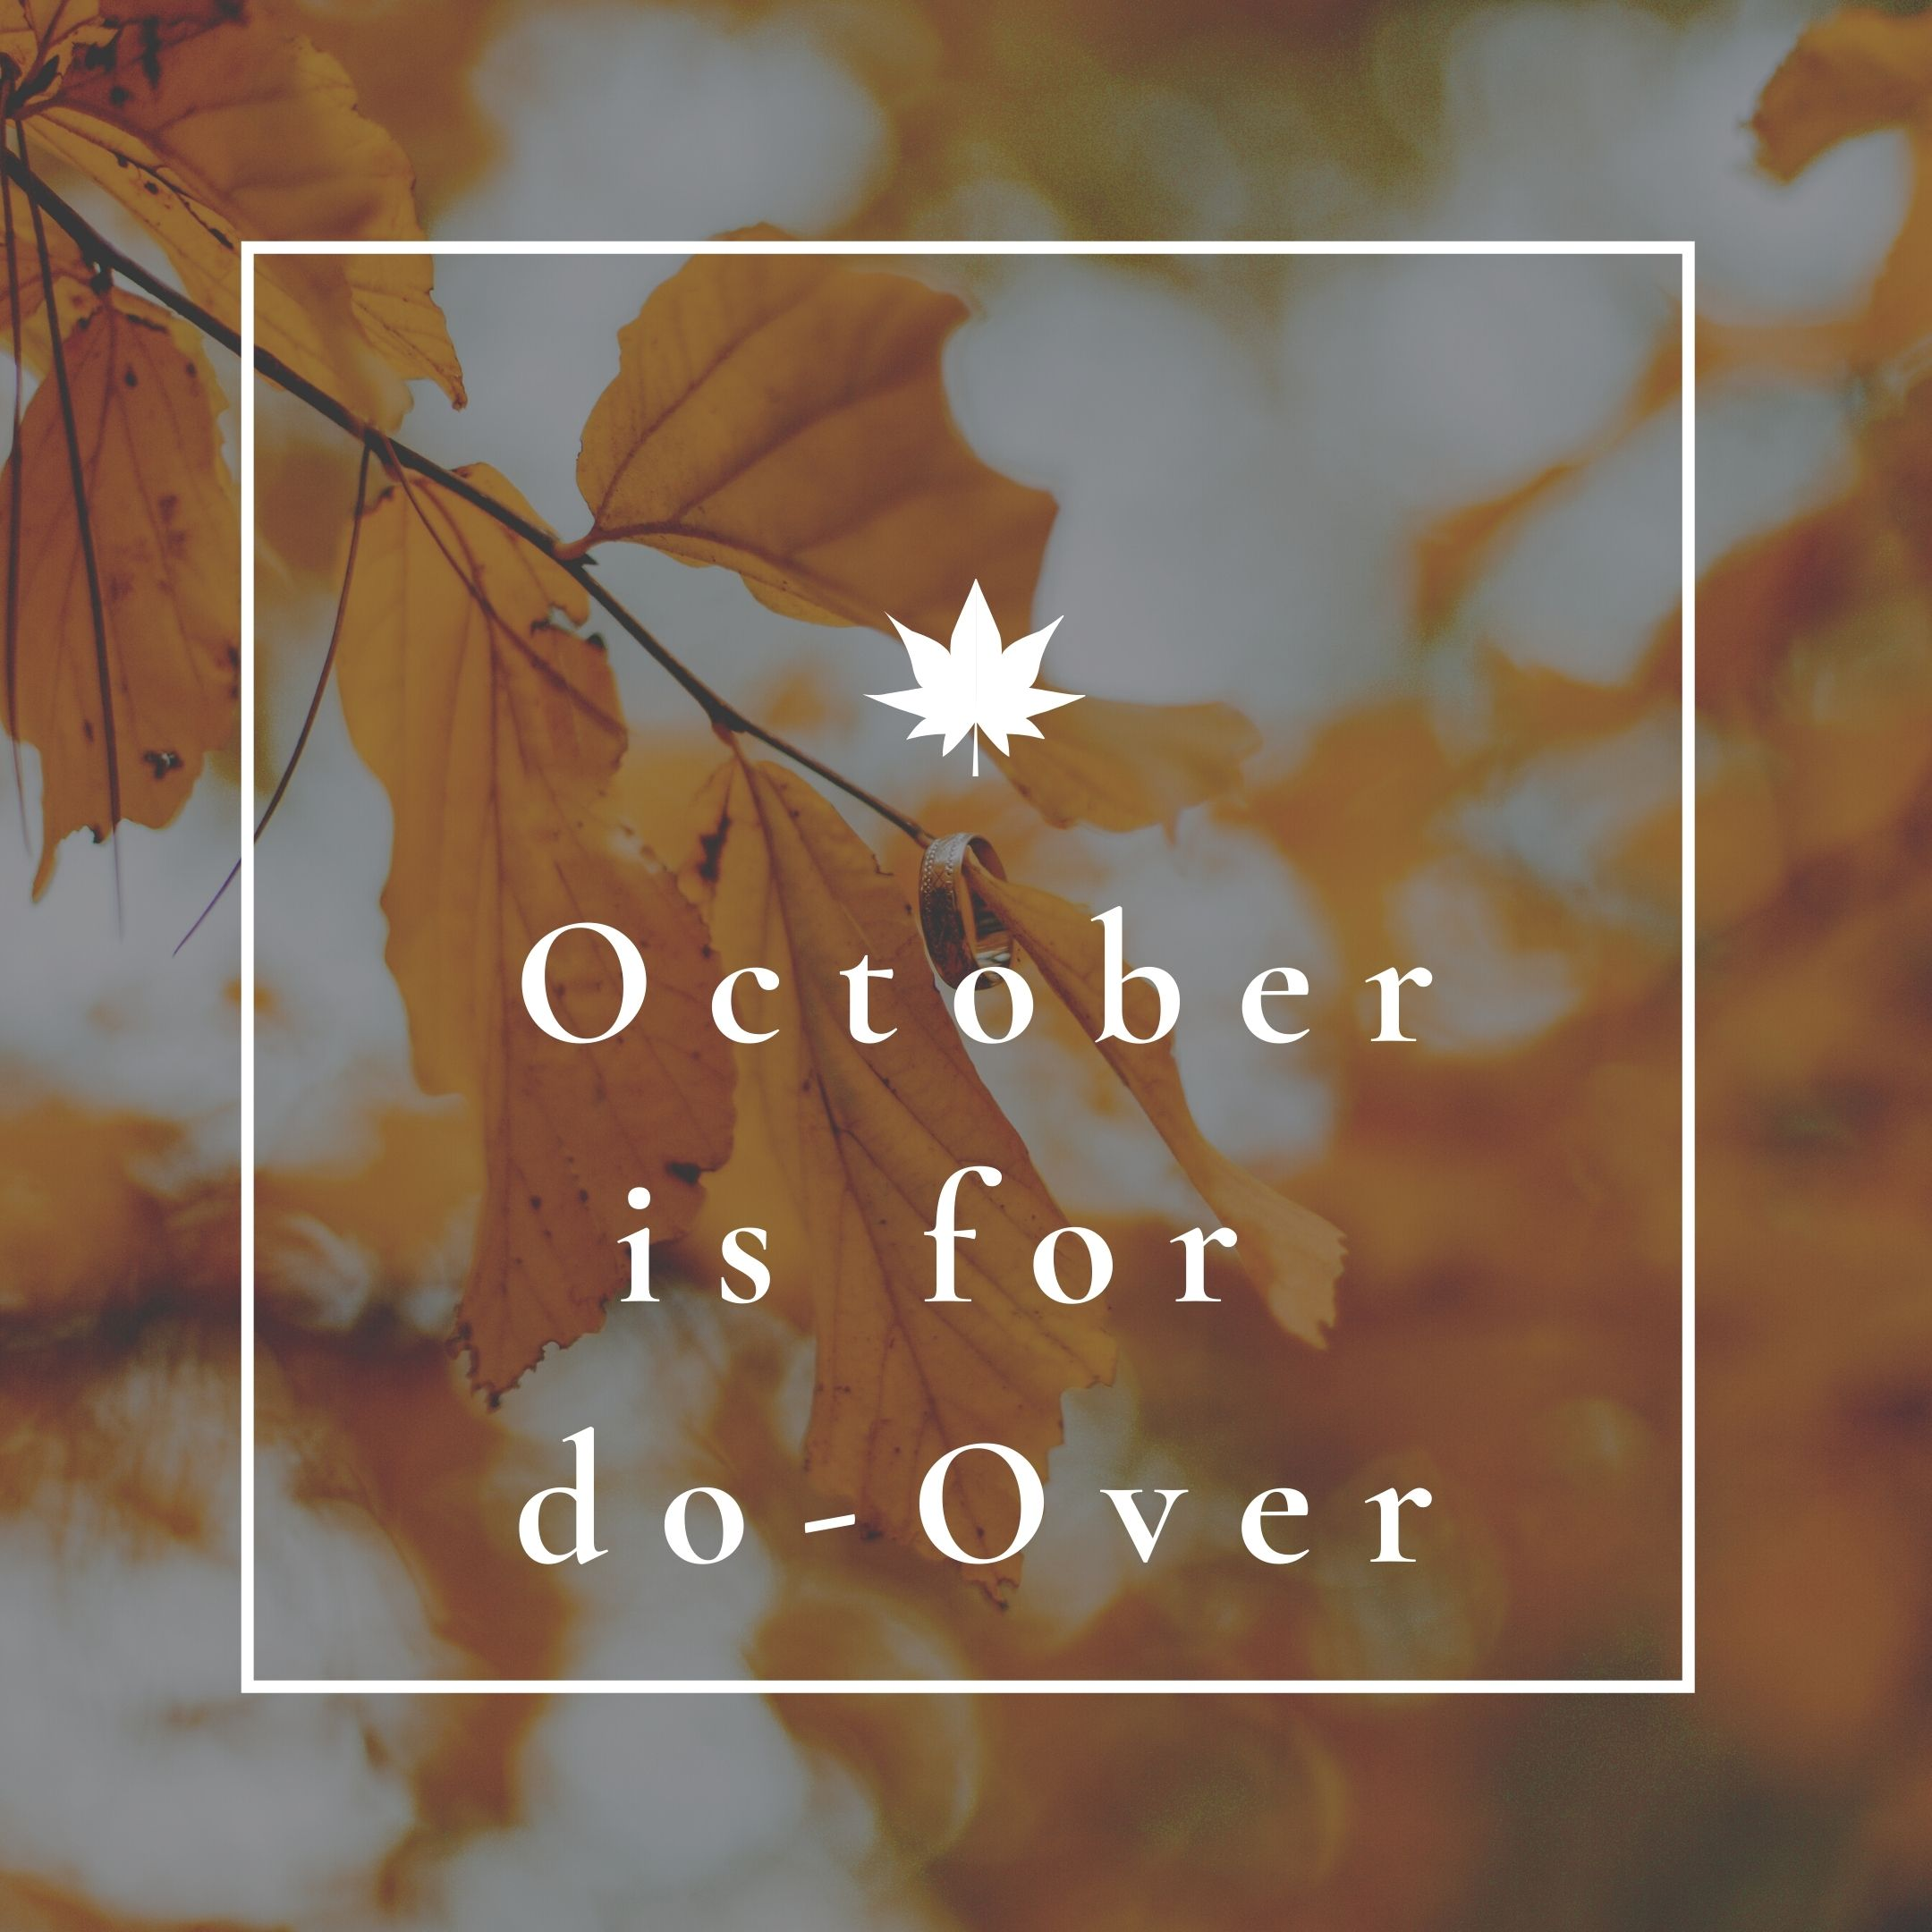 October is for do-Over